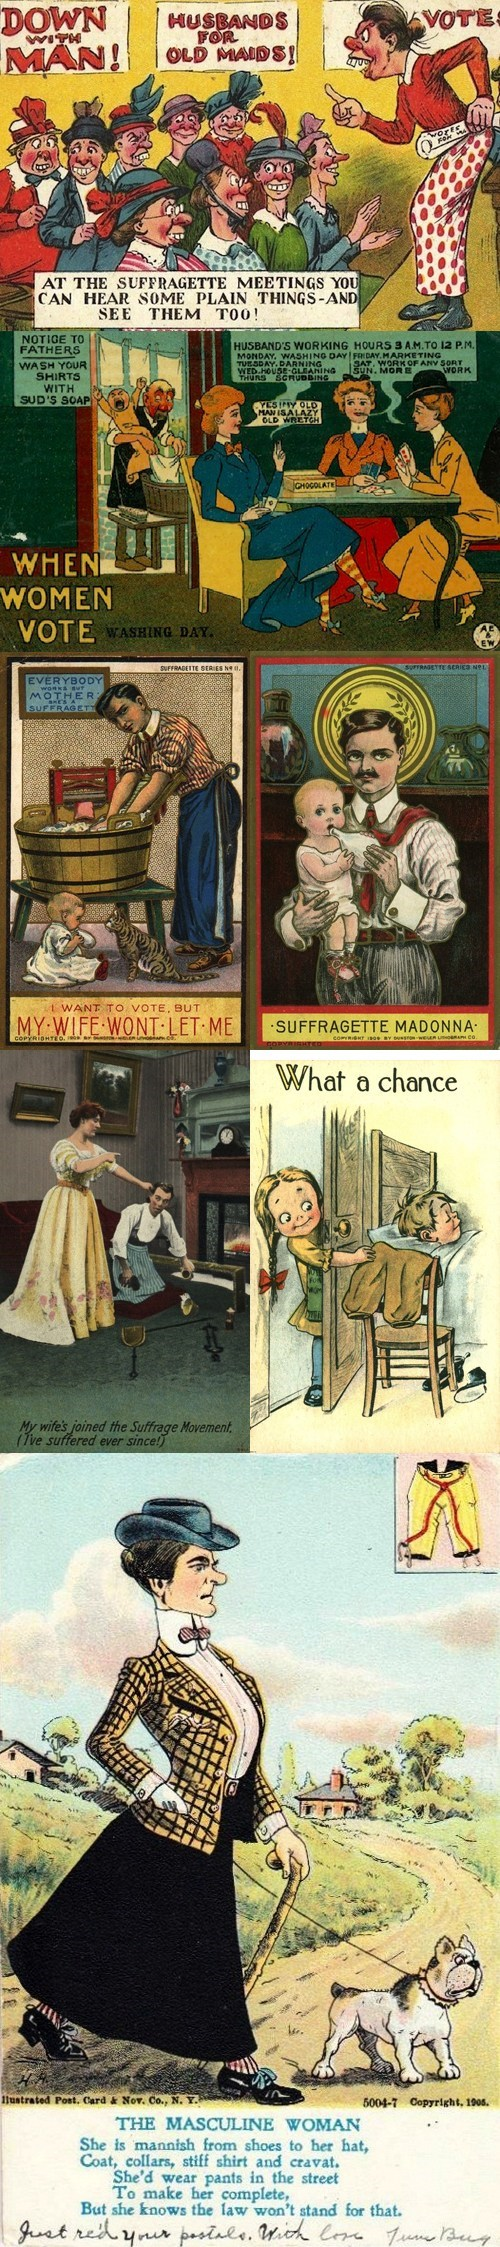 history,womens-suffrage,past,voting,postcards